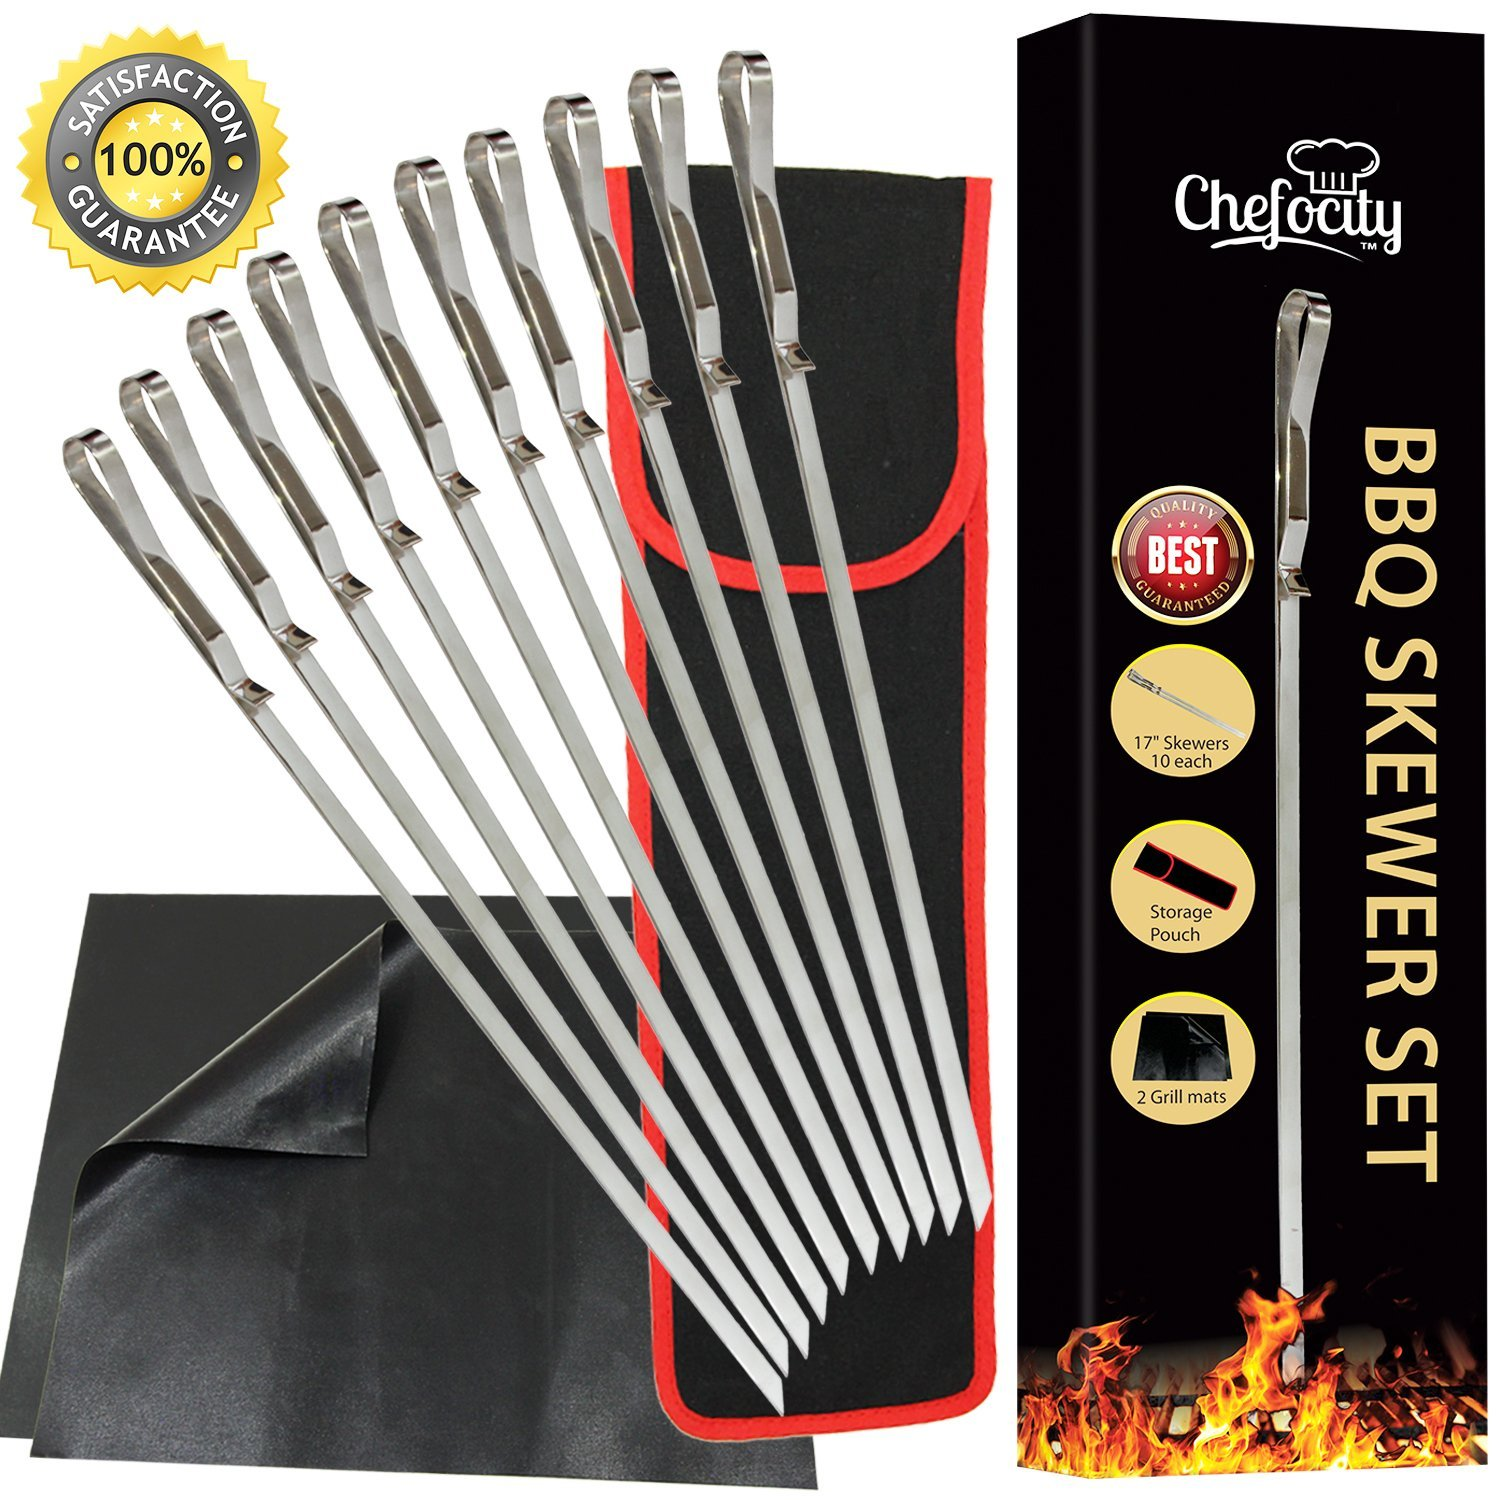 "Chefocity BBQ Kabob Skewers For Grilling, Stainless Steel 17"" Long, Extra Wide Flat Metal Skewers - Barbecue Grill Mats - Storage Bag - 13 Piece Set + Free Ebook"